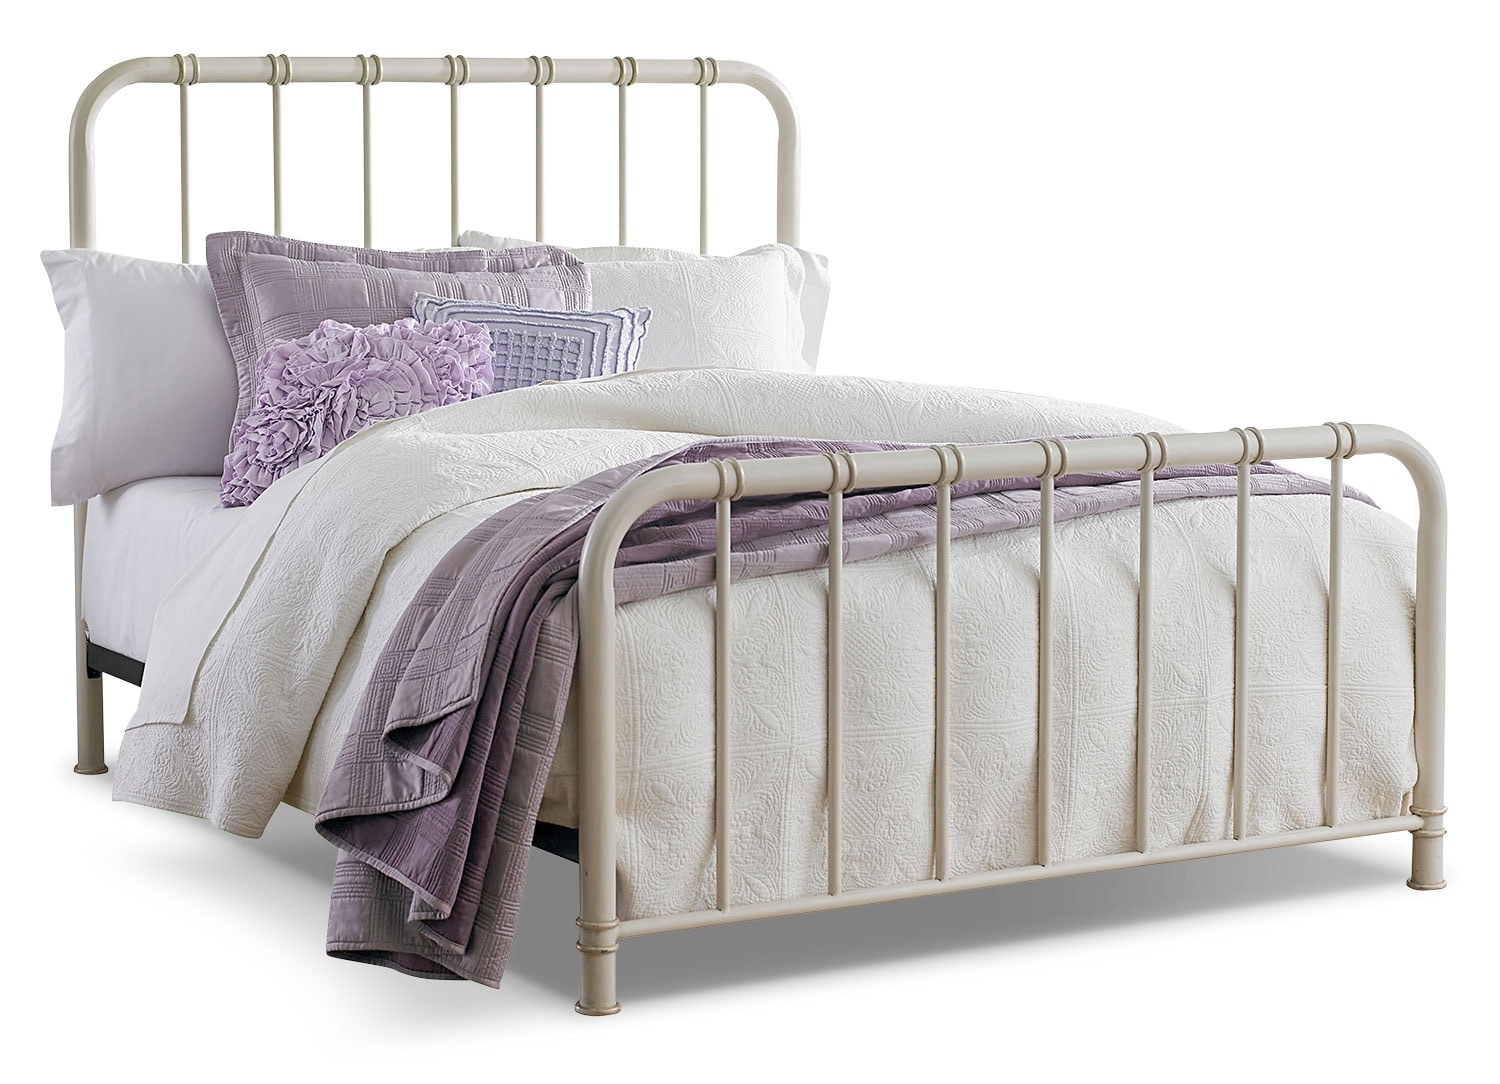 Tristan Full Metal Bed - Antique White